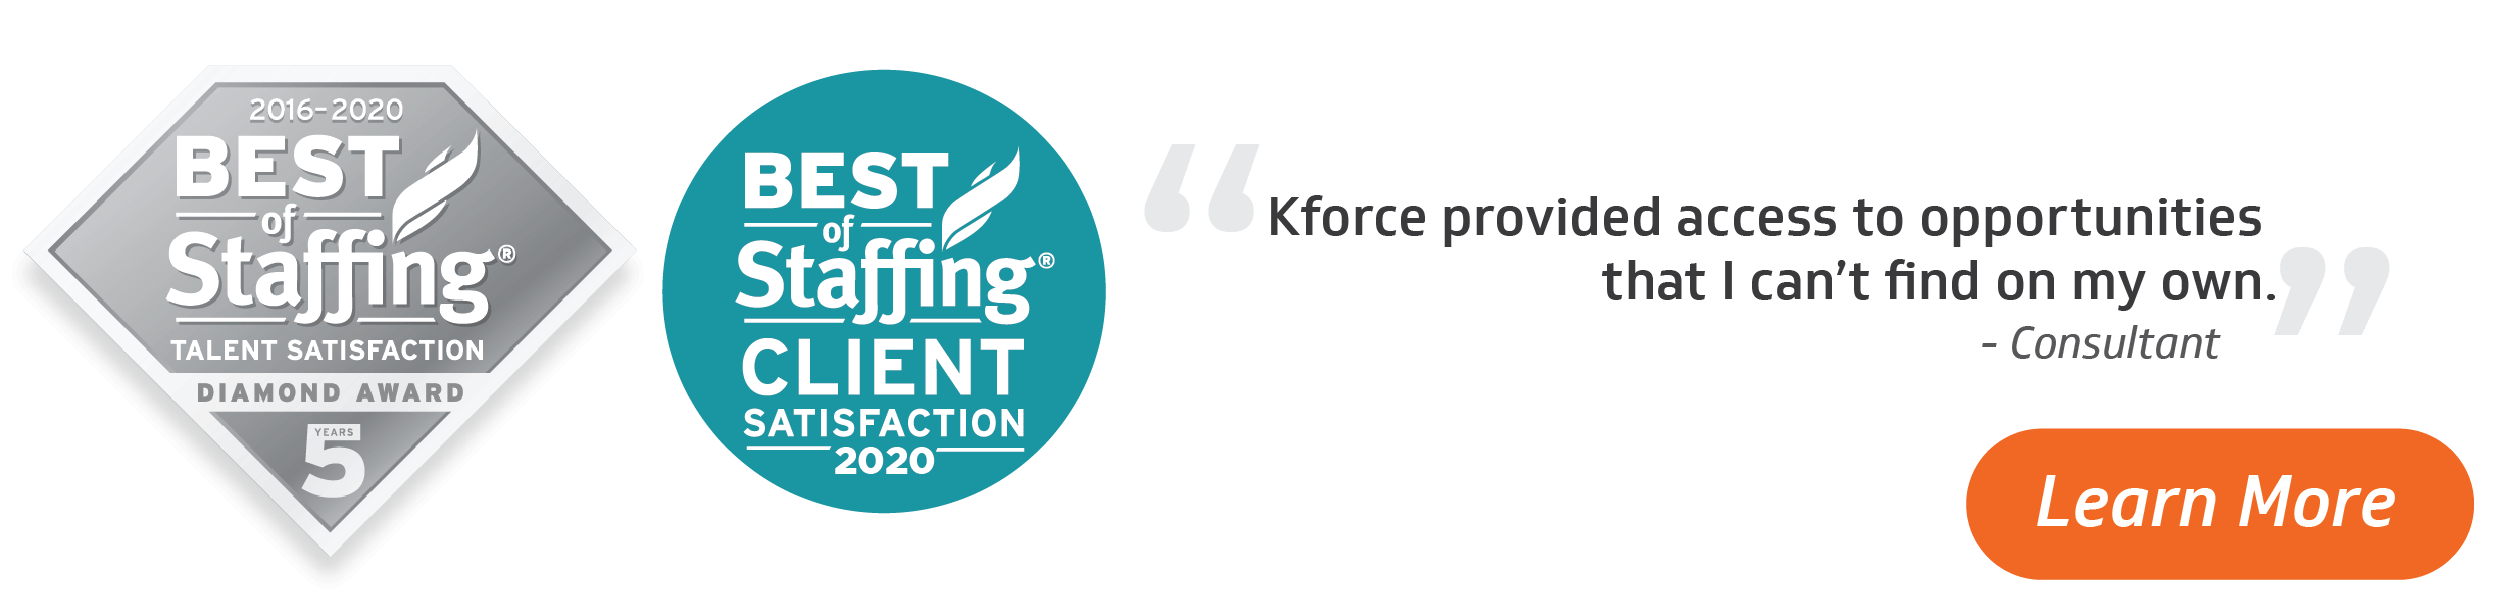 Kforce Wins Best of Staffing 2020